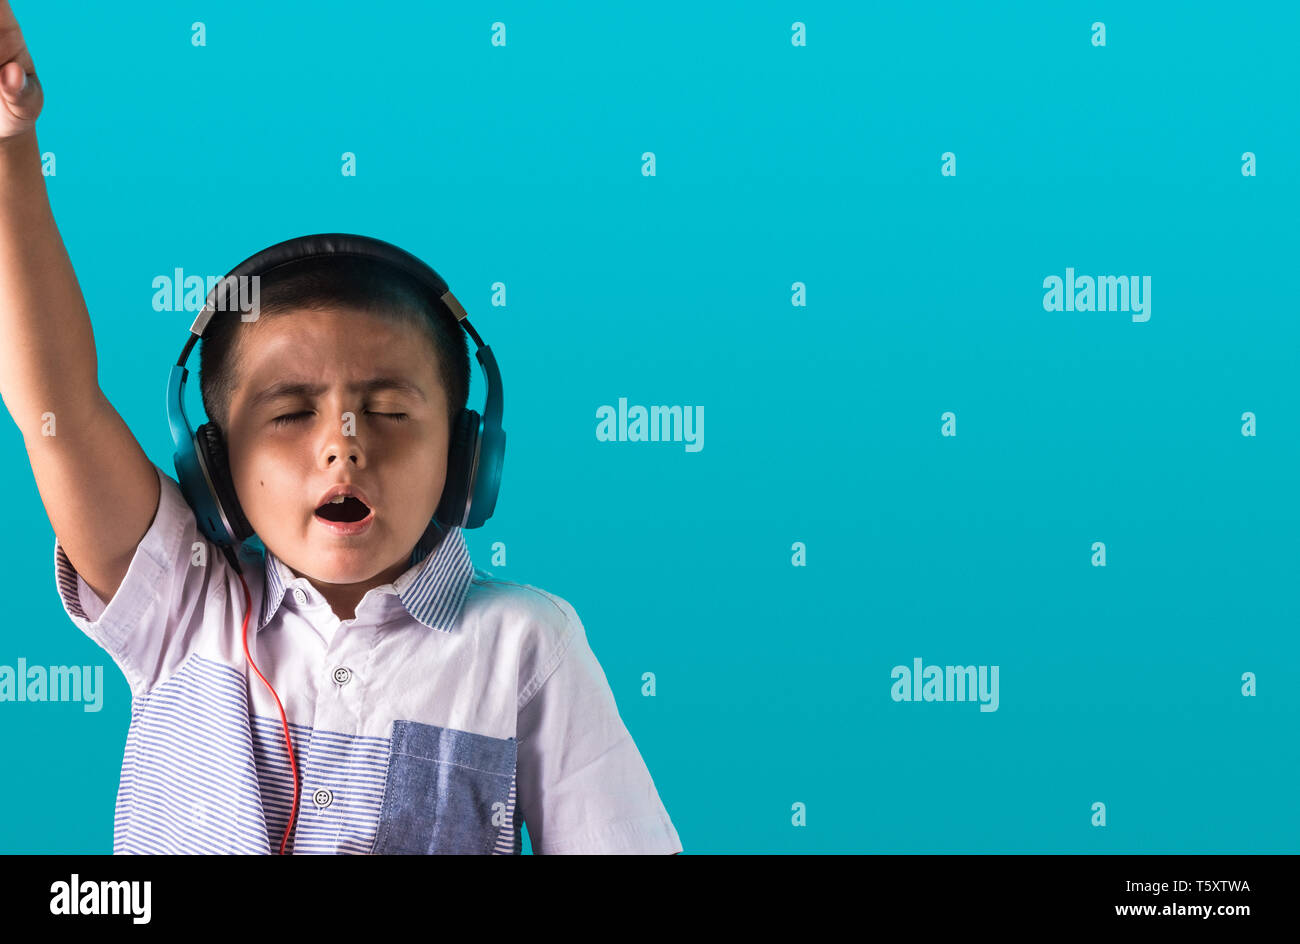 Small boy with expressive face listening to music on headphones dancing and singing authentic unposed image with copy space for text. - Stock Image